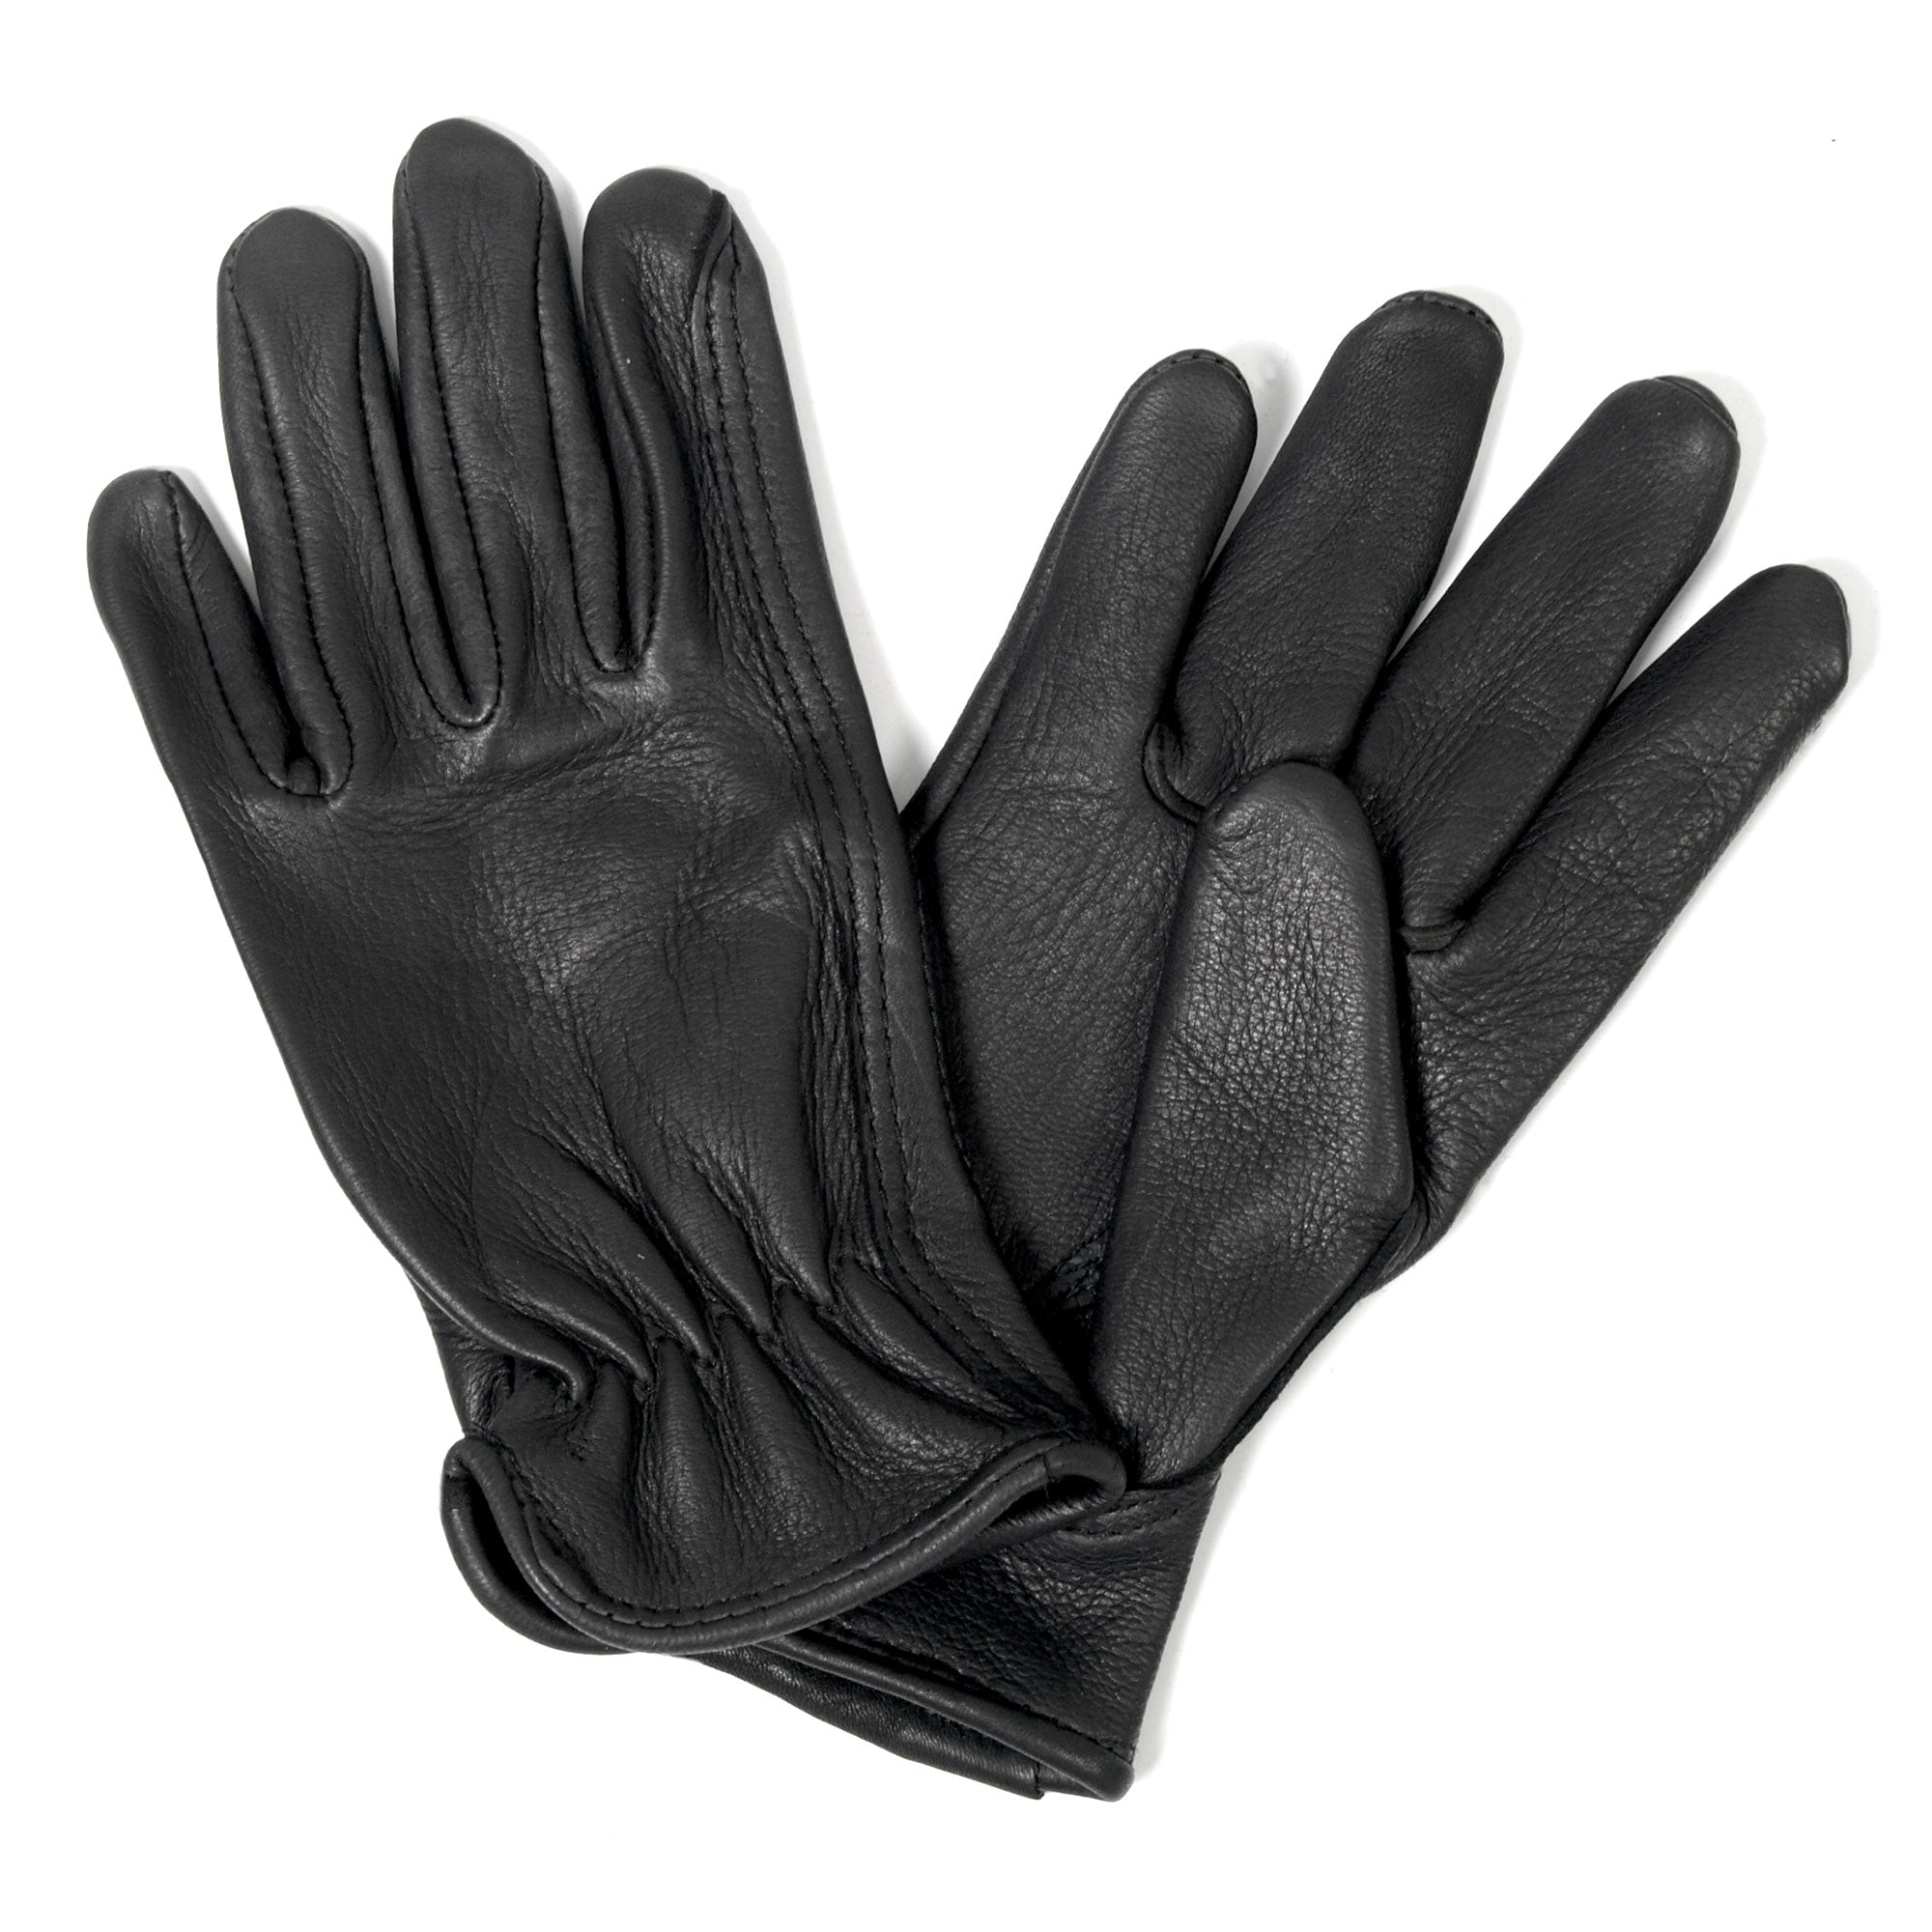 Hot Leathers Classic Deerskin Unlined Driving Glove